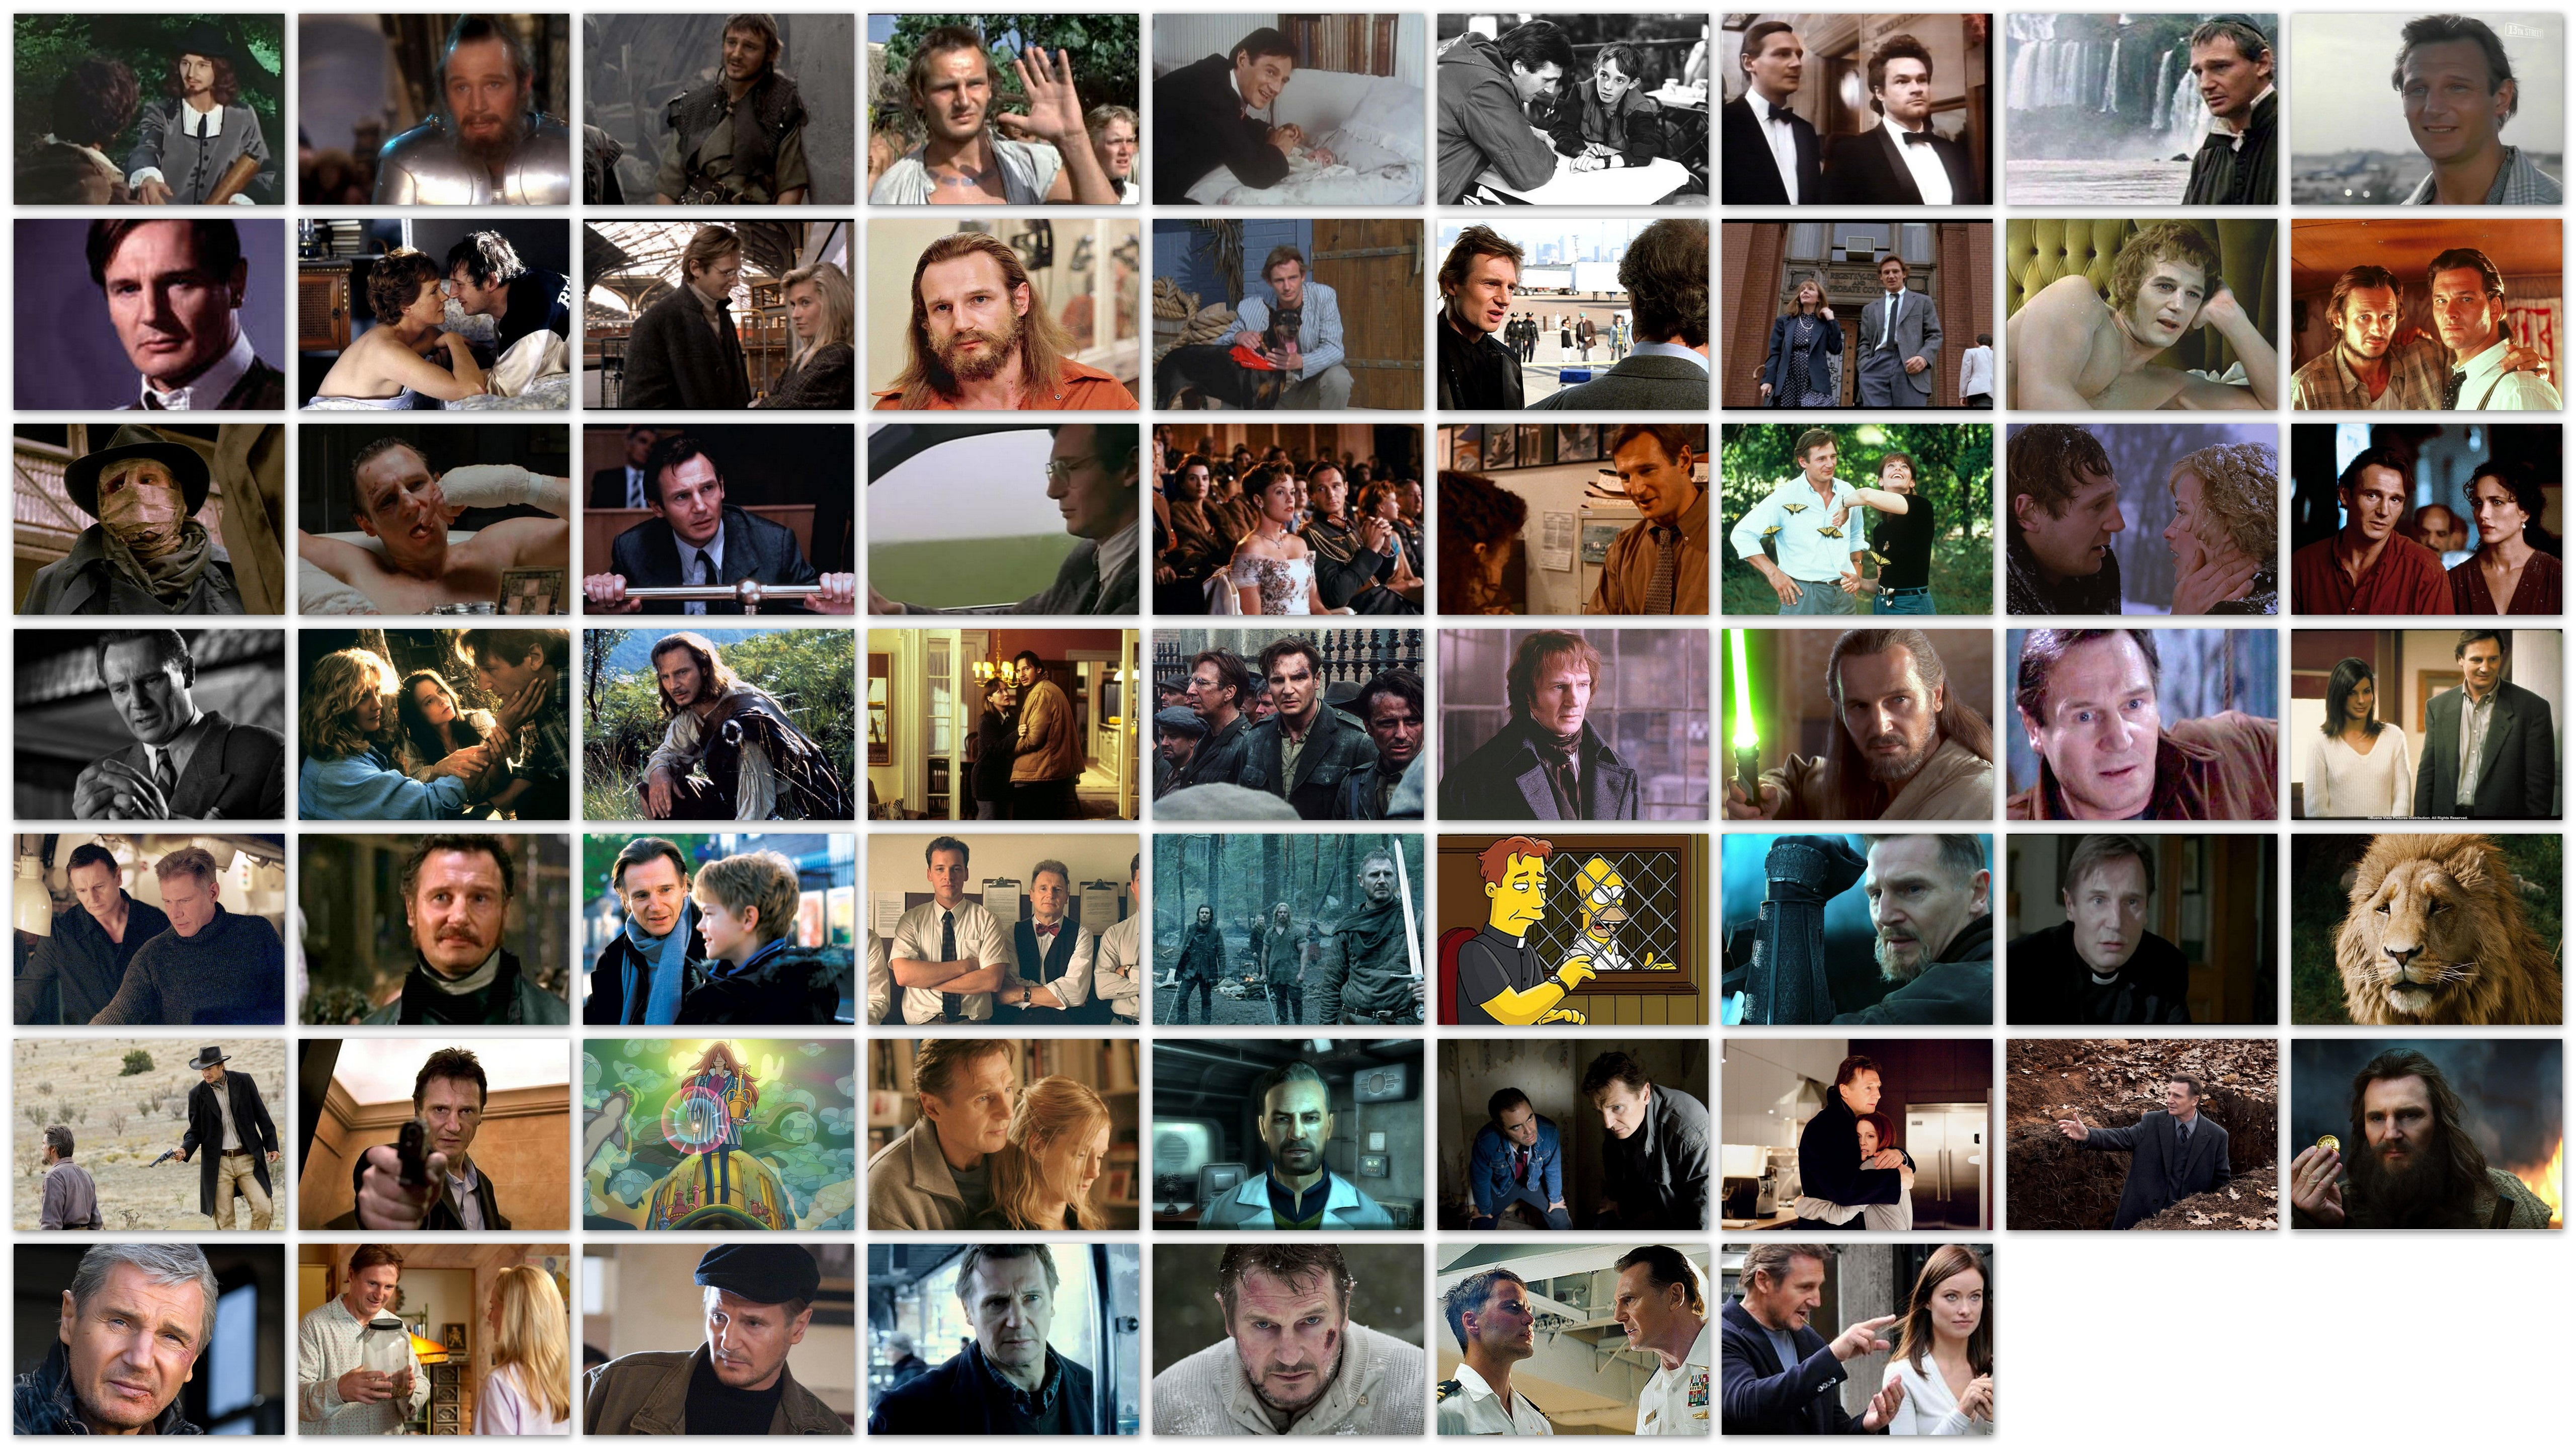 Overview of roles of actor Liam Neeson in his movies